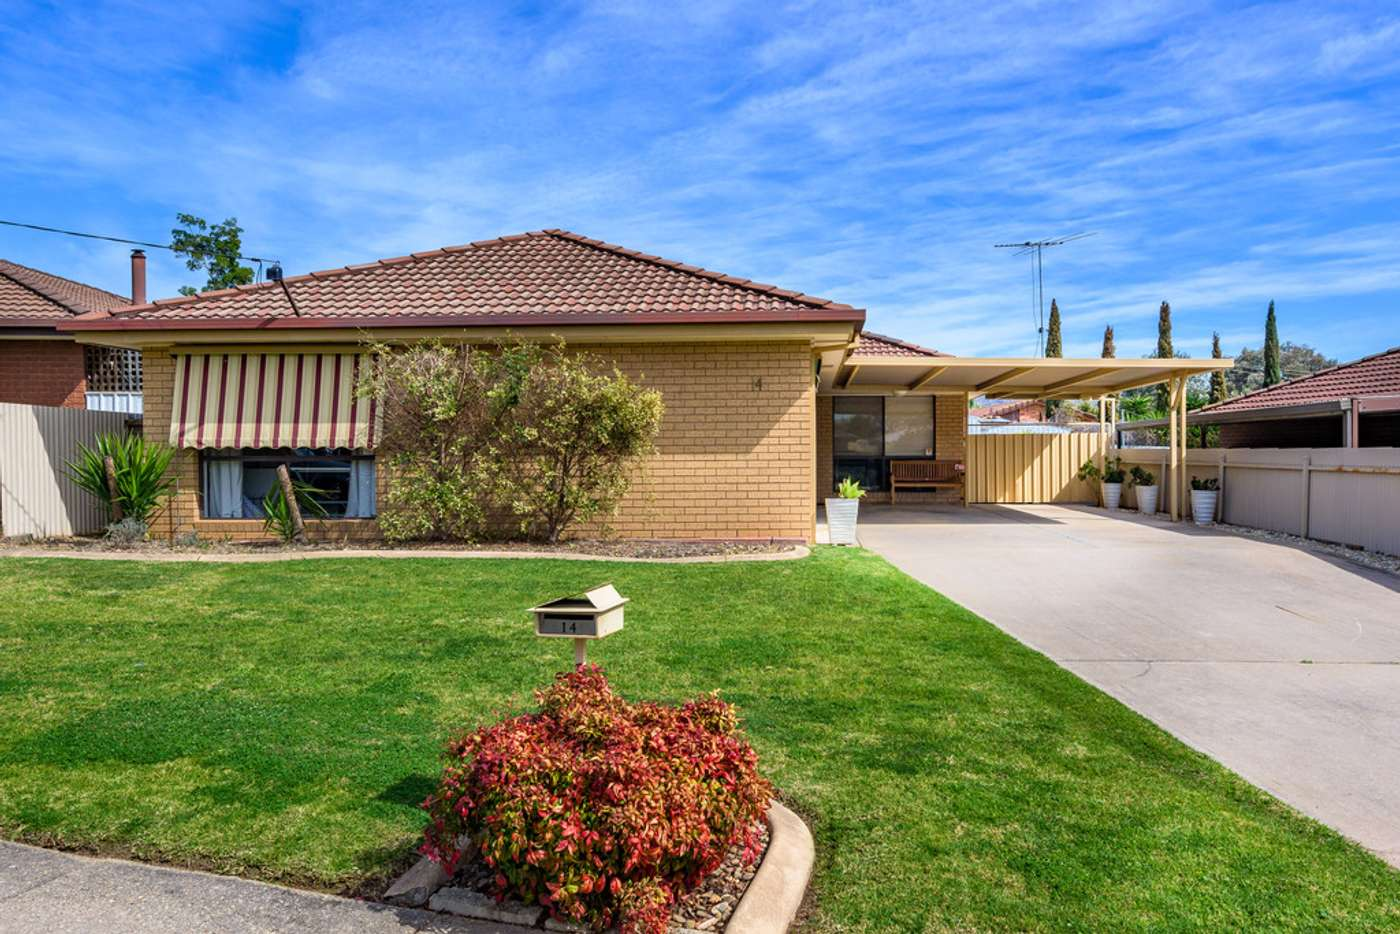 Main view of Homely house listing, 14 Lynch Court, Wodonga VIC 3690